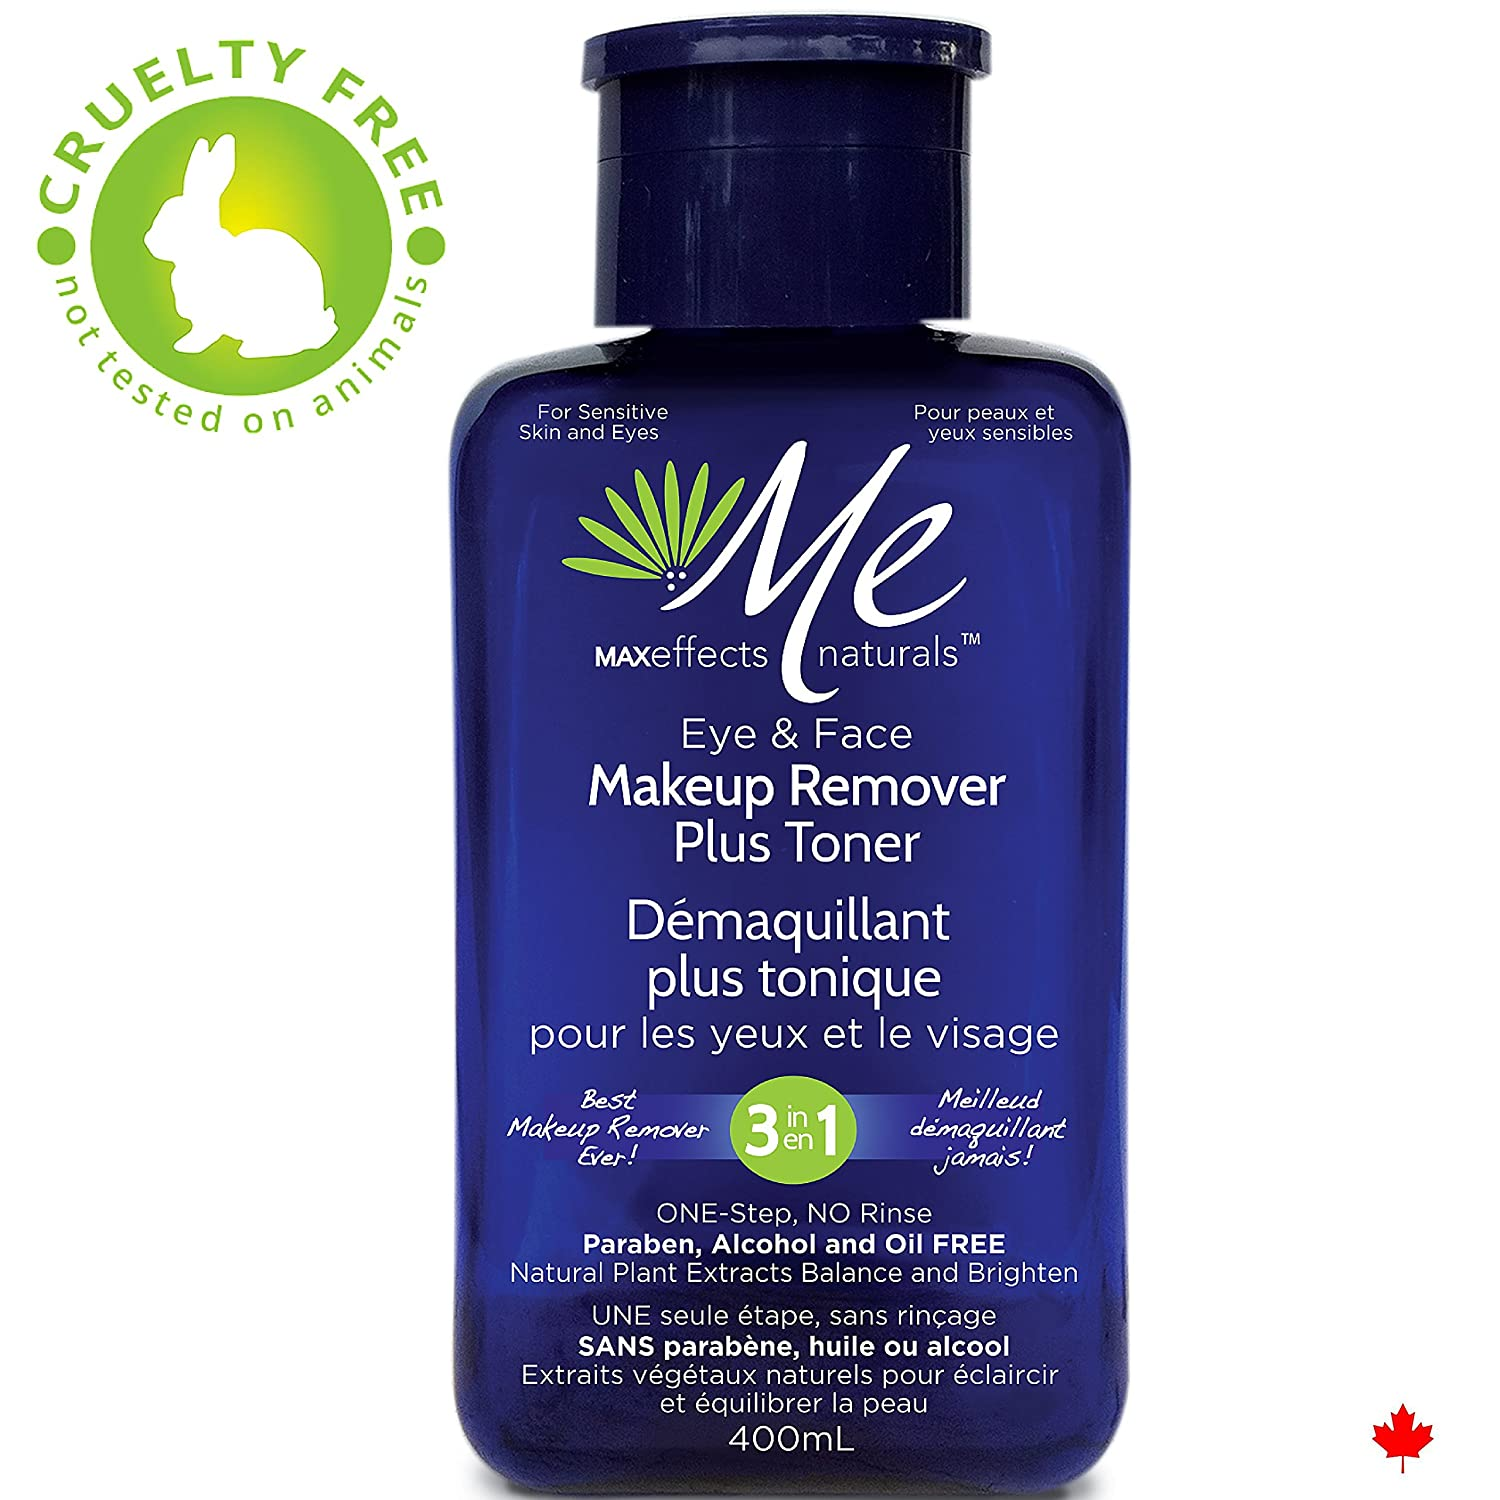 Me MAXeffects naturals 3in1 Eye and Face Makeup Remover Plus Toner, (Vanity, 400 ml Blue Bottle) with Special Pump Technology, Deep Clean Oil and Alcohol free MaxBioChem Inc.